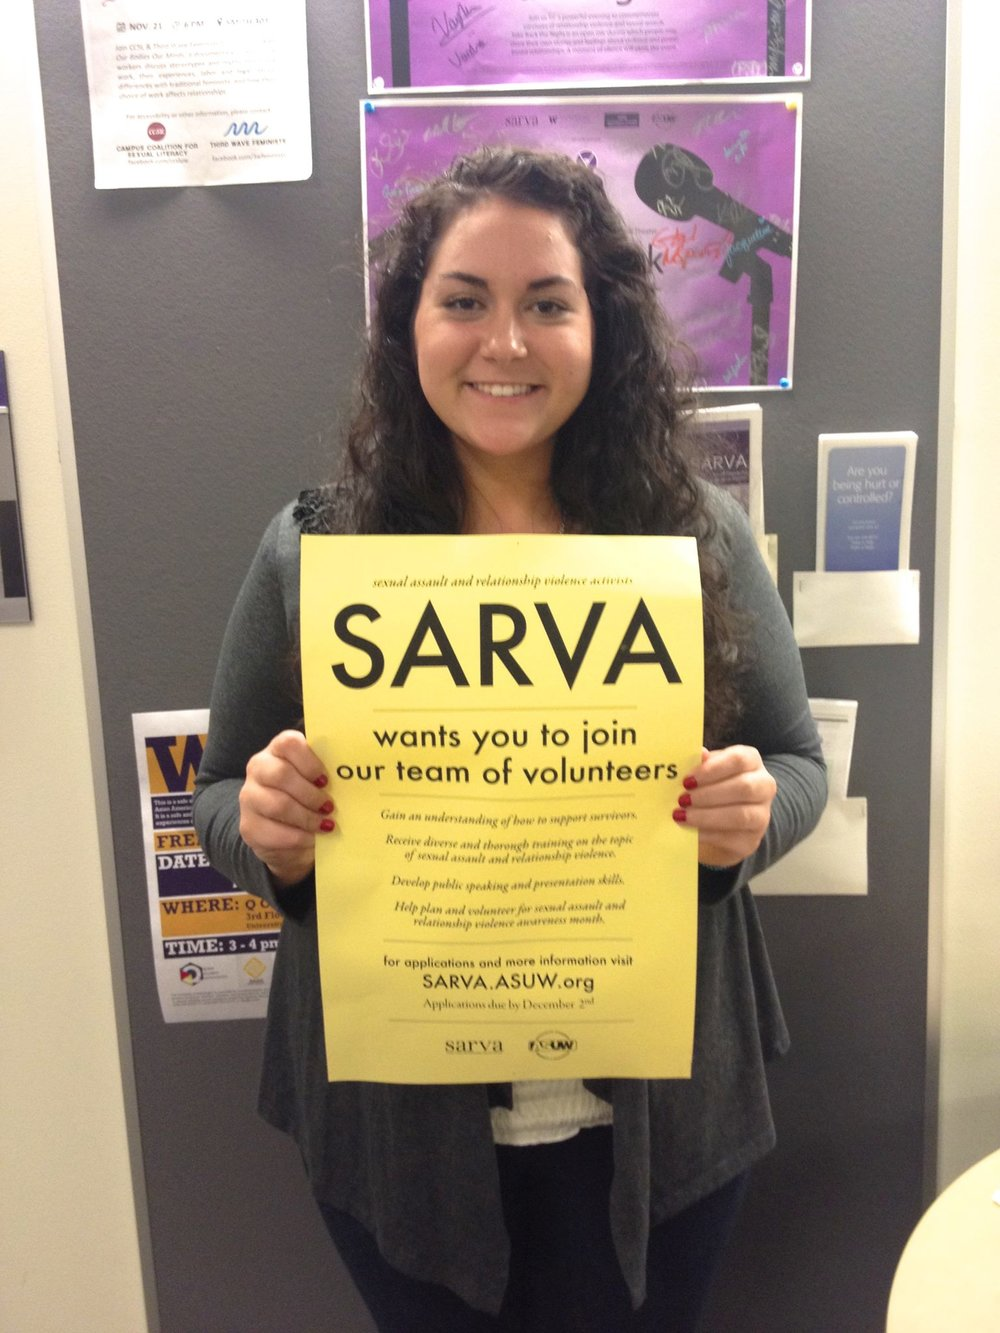 [Image: Alexandria holding a yellow ASUW SARVA sign to prompt volunteers to join the community (2013)]